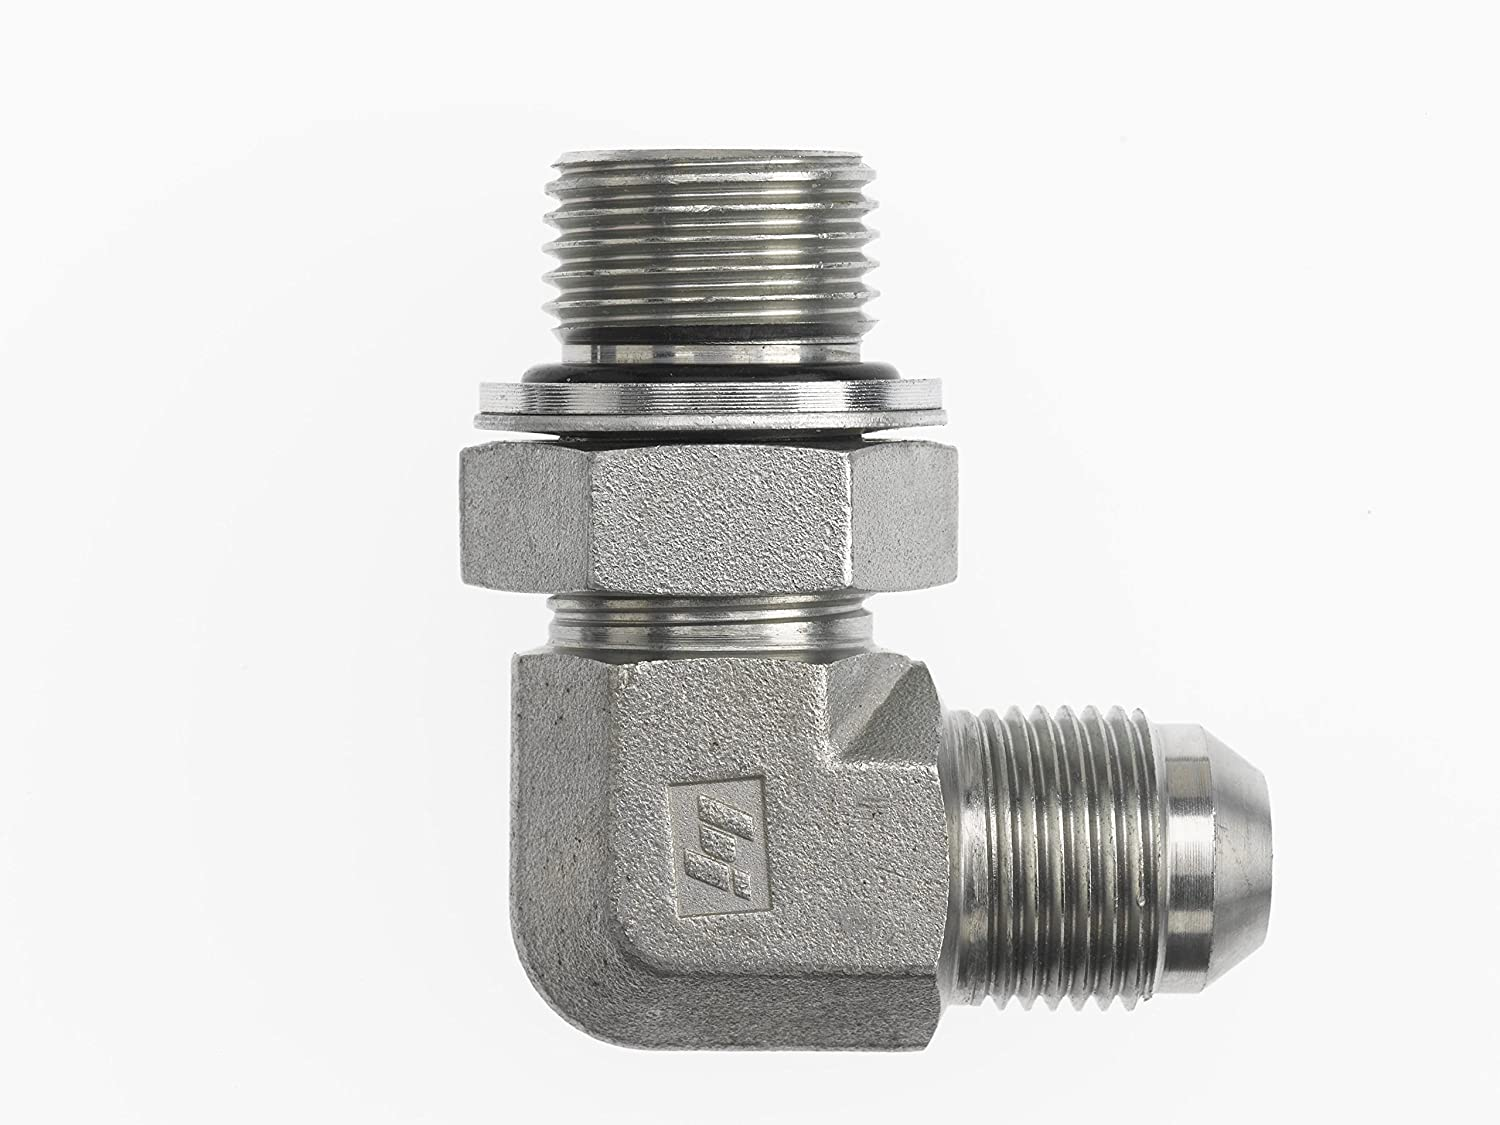 1-1/16-12 Male JIC x 1/2-14 Male BSPP Swivel Adjustable 1-1/16-12 Male JIC  x 1/2-14 Male BSPP Swivel Adjustable Inc. Brennan Industries  7202-12-08-NWO-FG Forged Steel 90 Degree Elbow Conversion Adapter Fitting  Tube Fittings Fittings